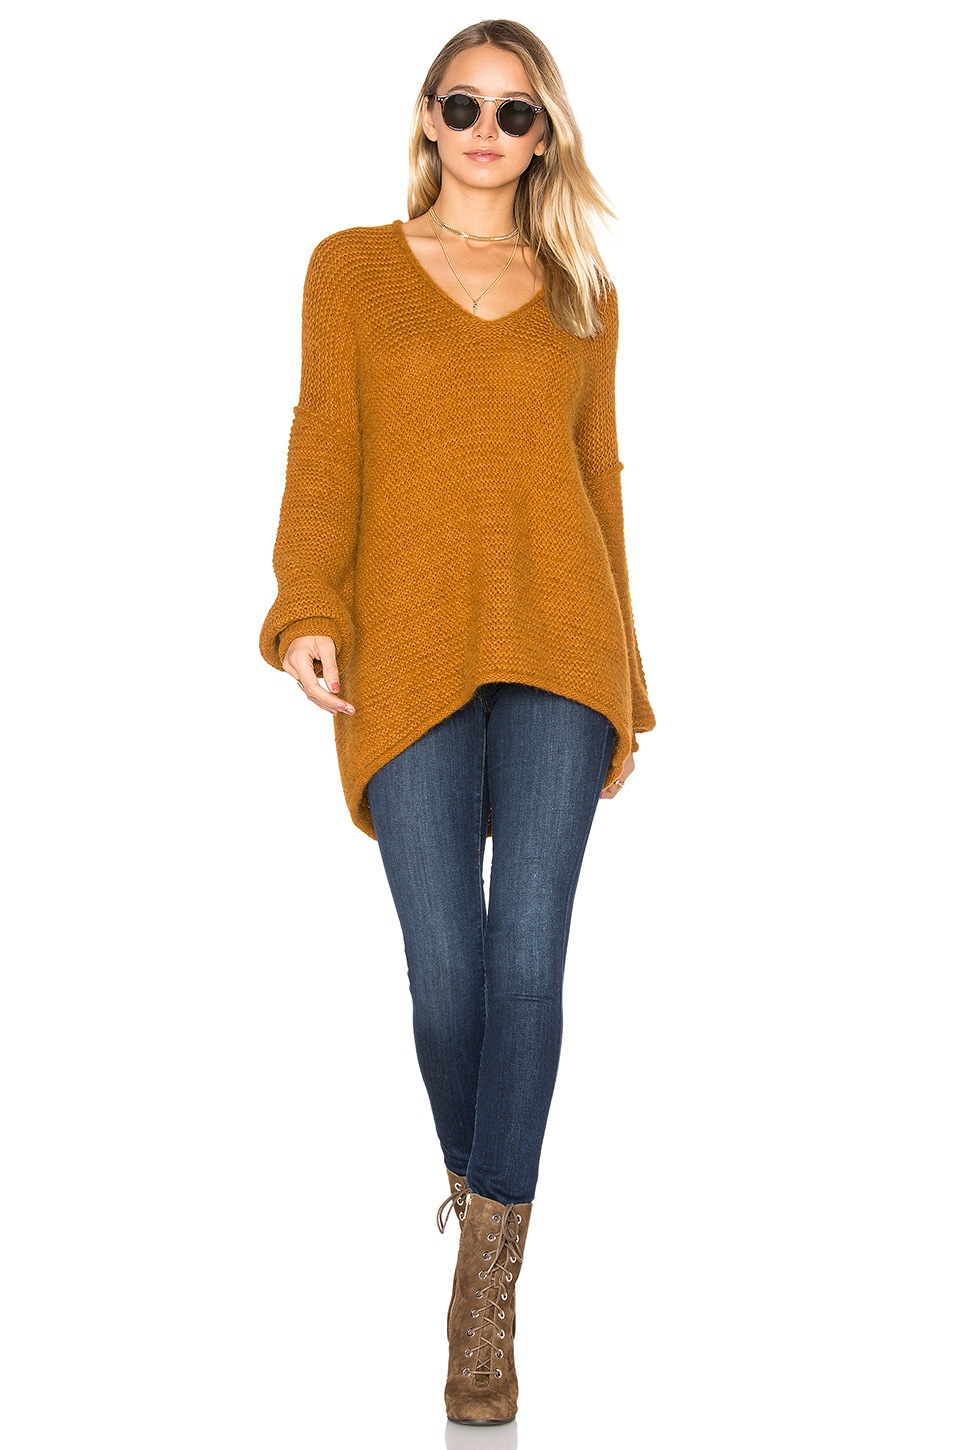 Free People All Mine Sweater in Terracotta